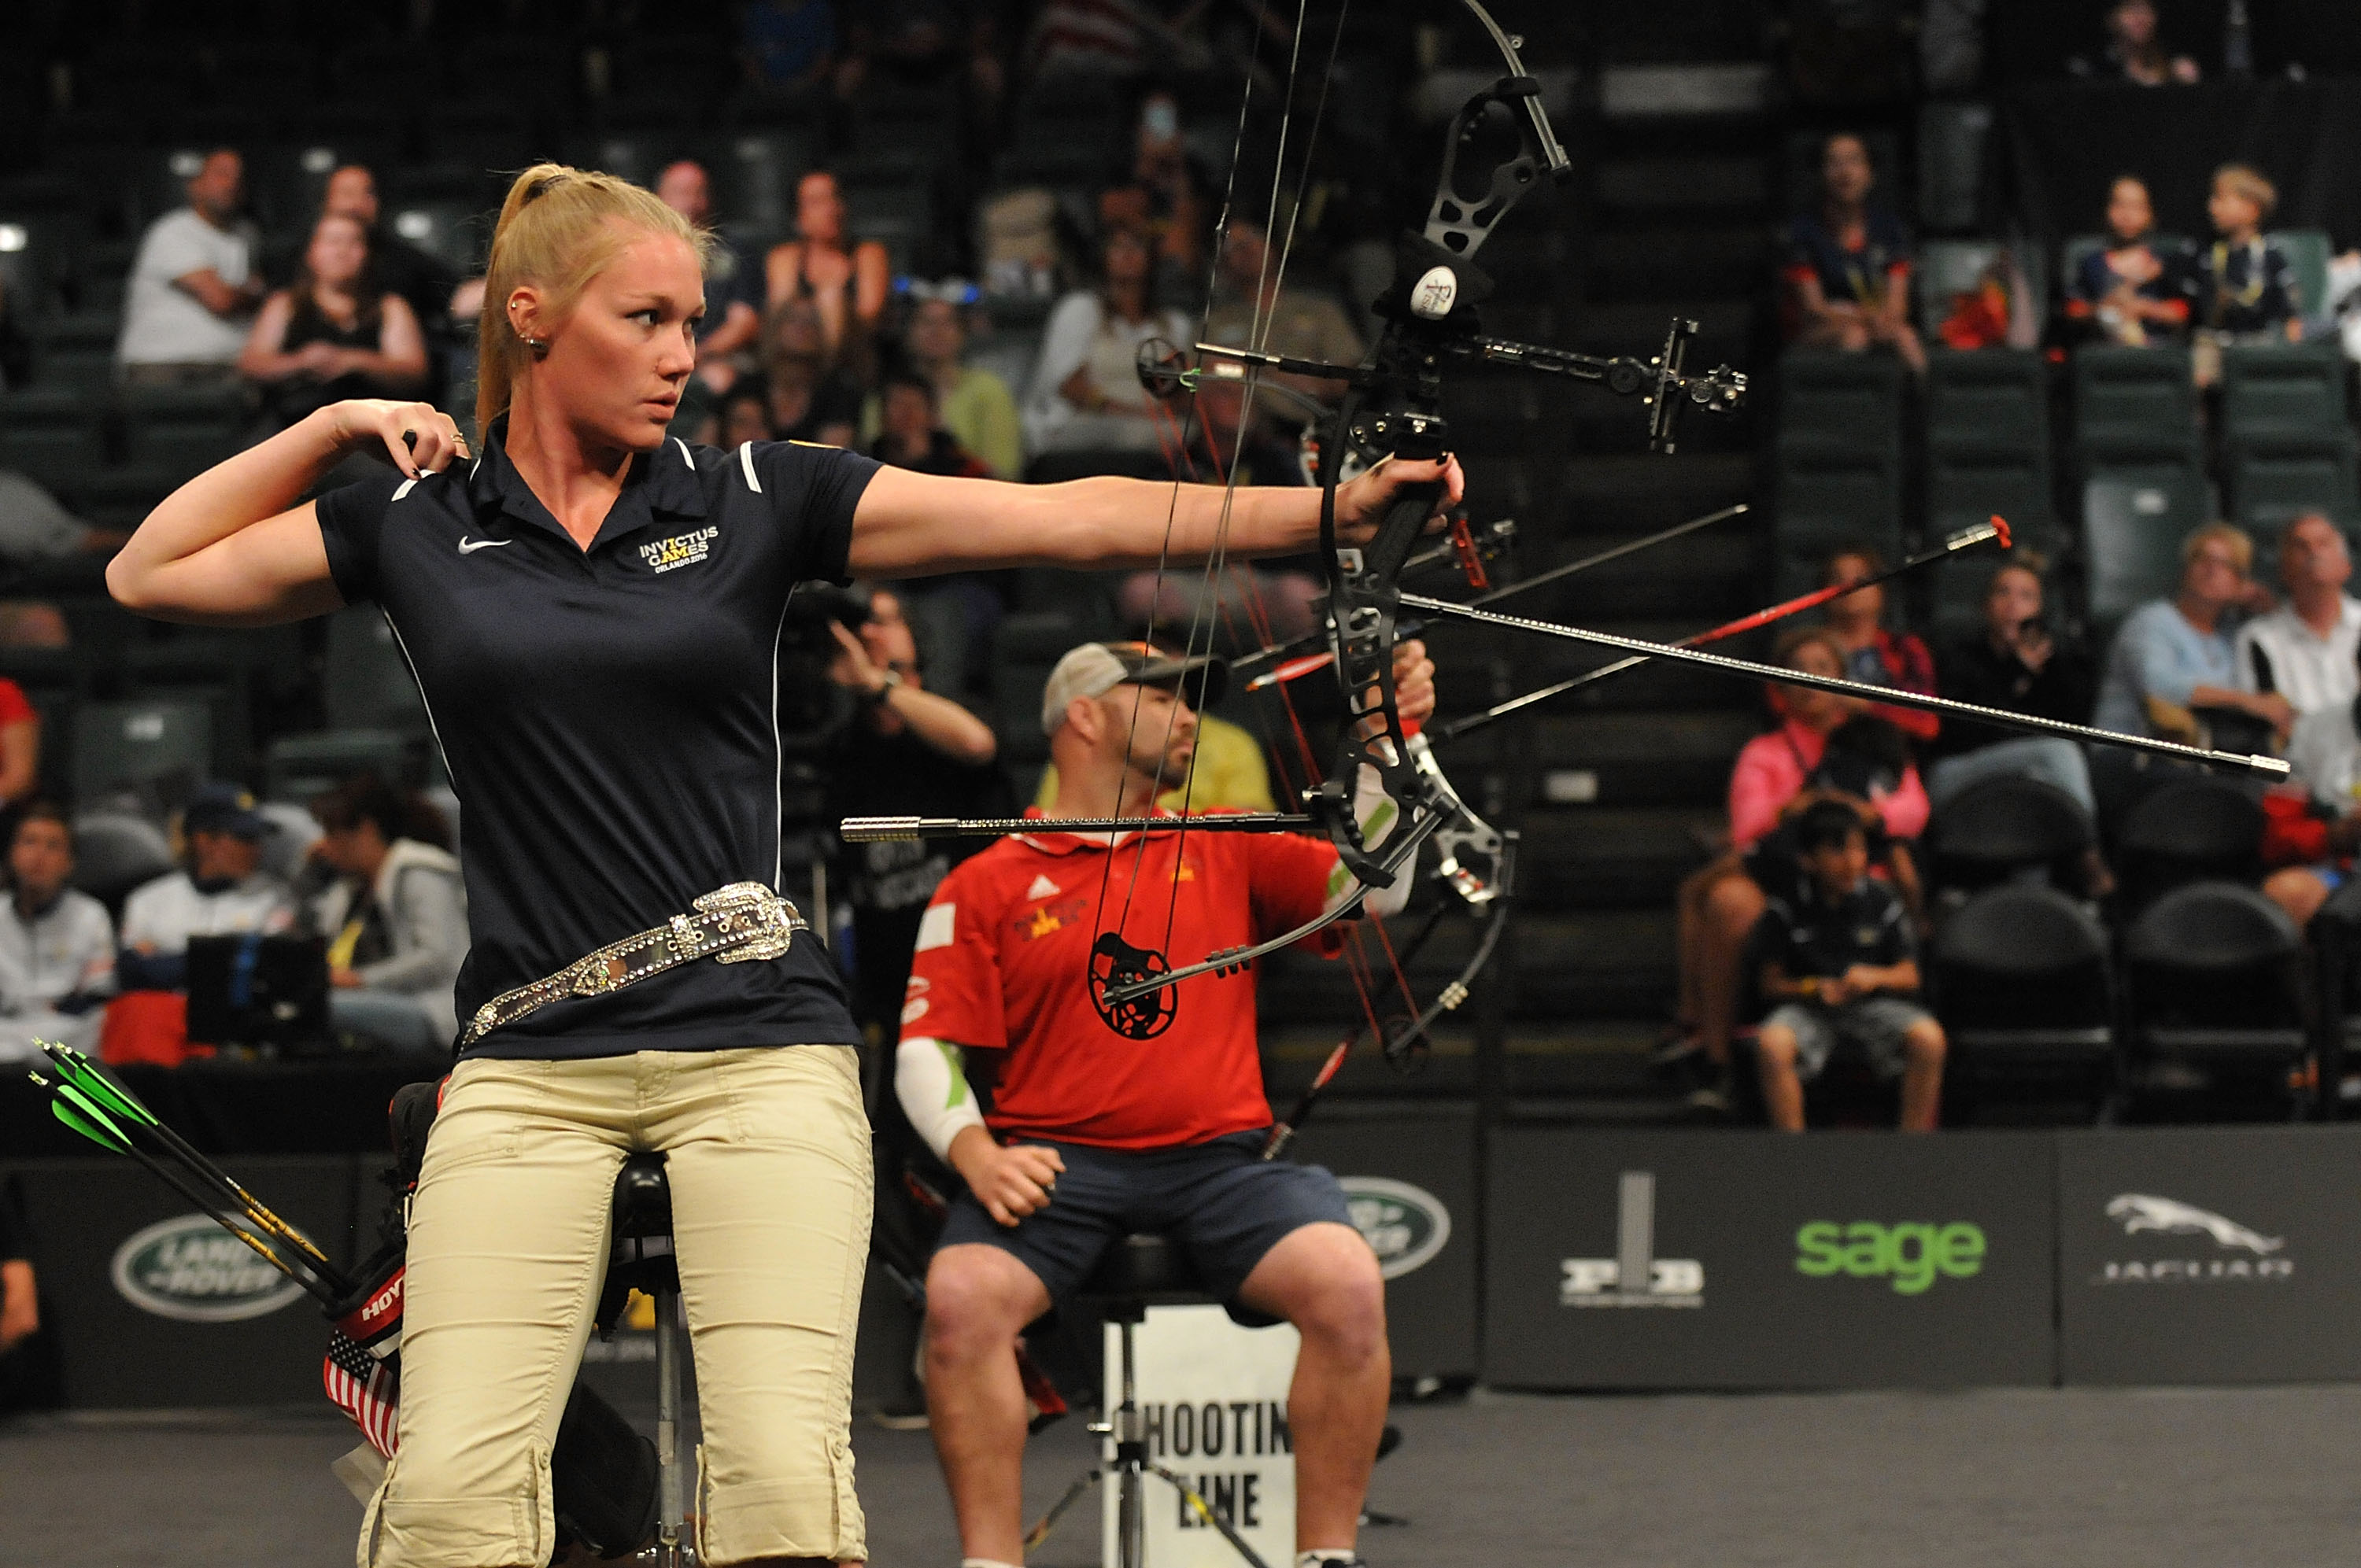 Luc Martin (CAN) and Chasity Kuczer (USA) shoot during the Archery Finals.